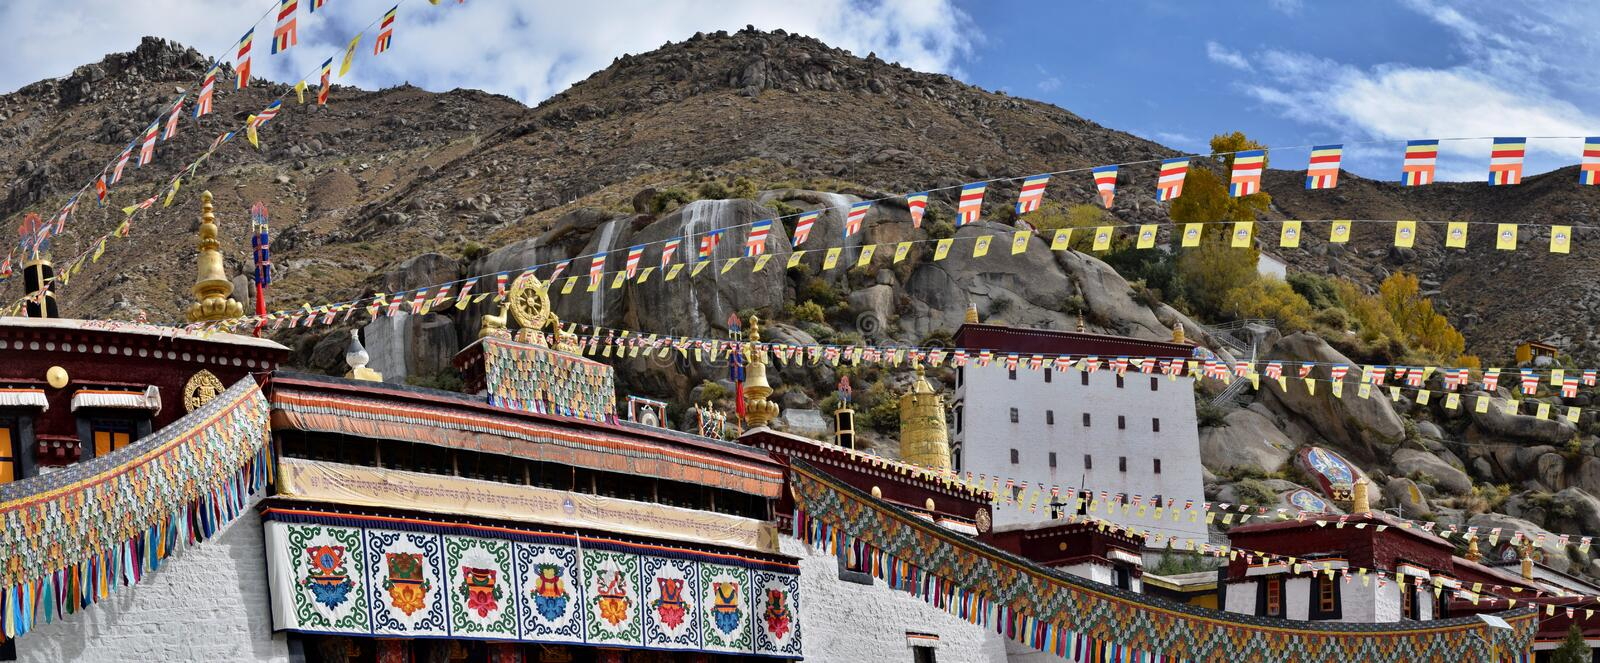 Sera Monastery, one of the great three Gelug university monasteries of Tibet, located near Lhasa. It was founded in 1419. stock image